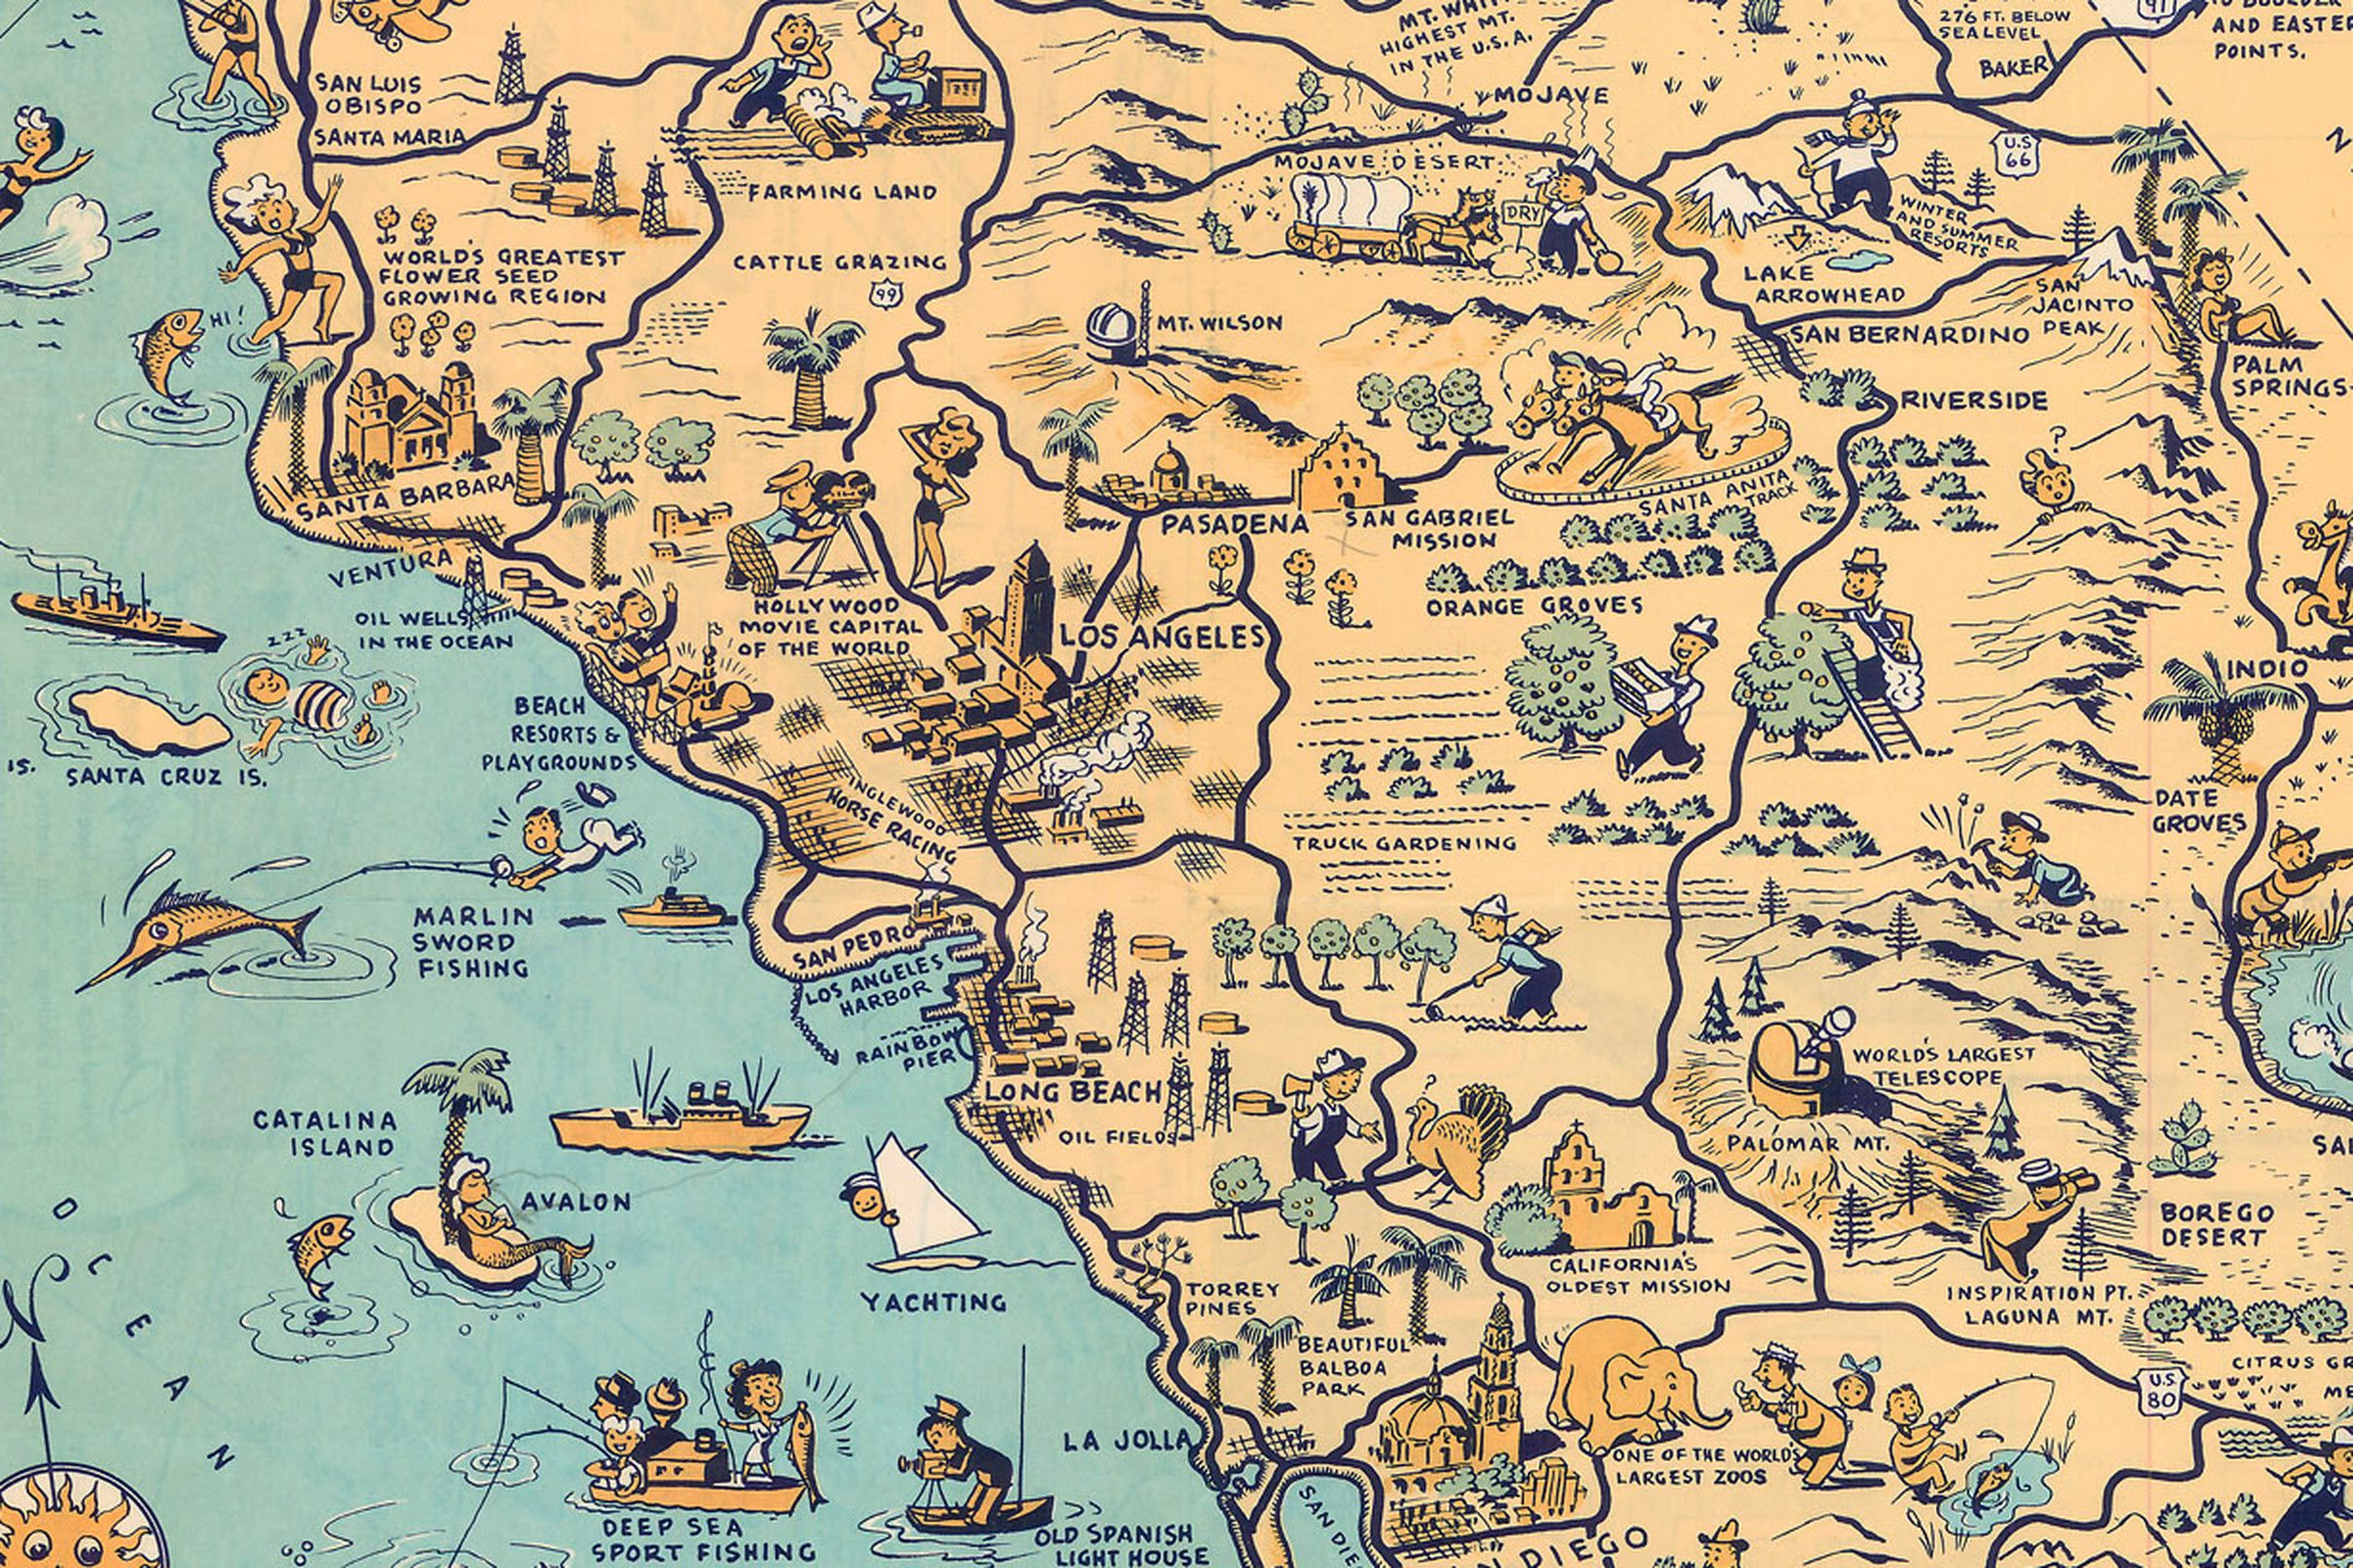 Whimsical old map depicts California at a